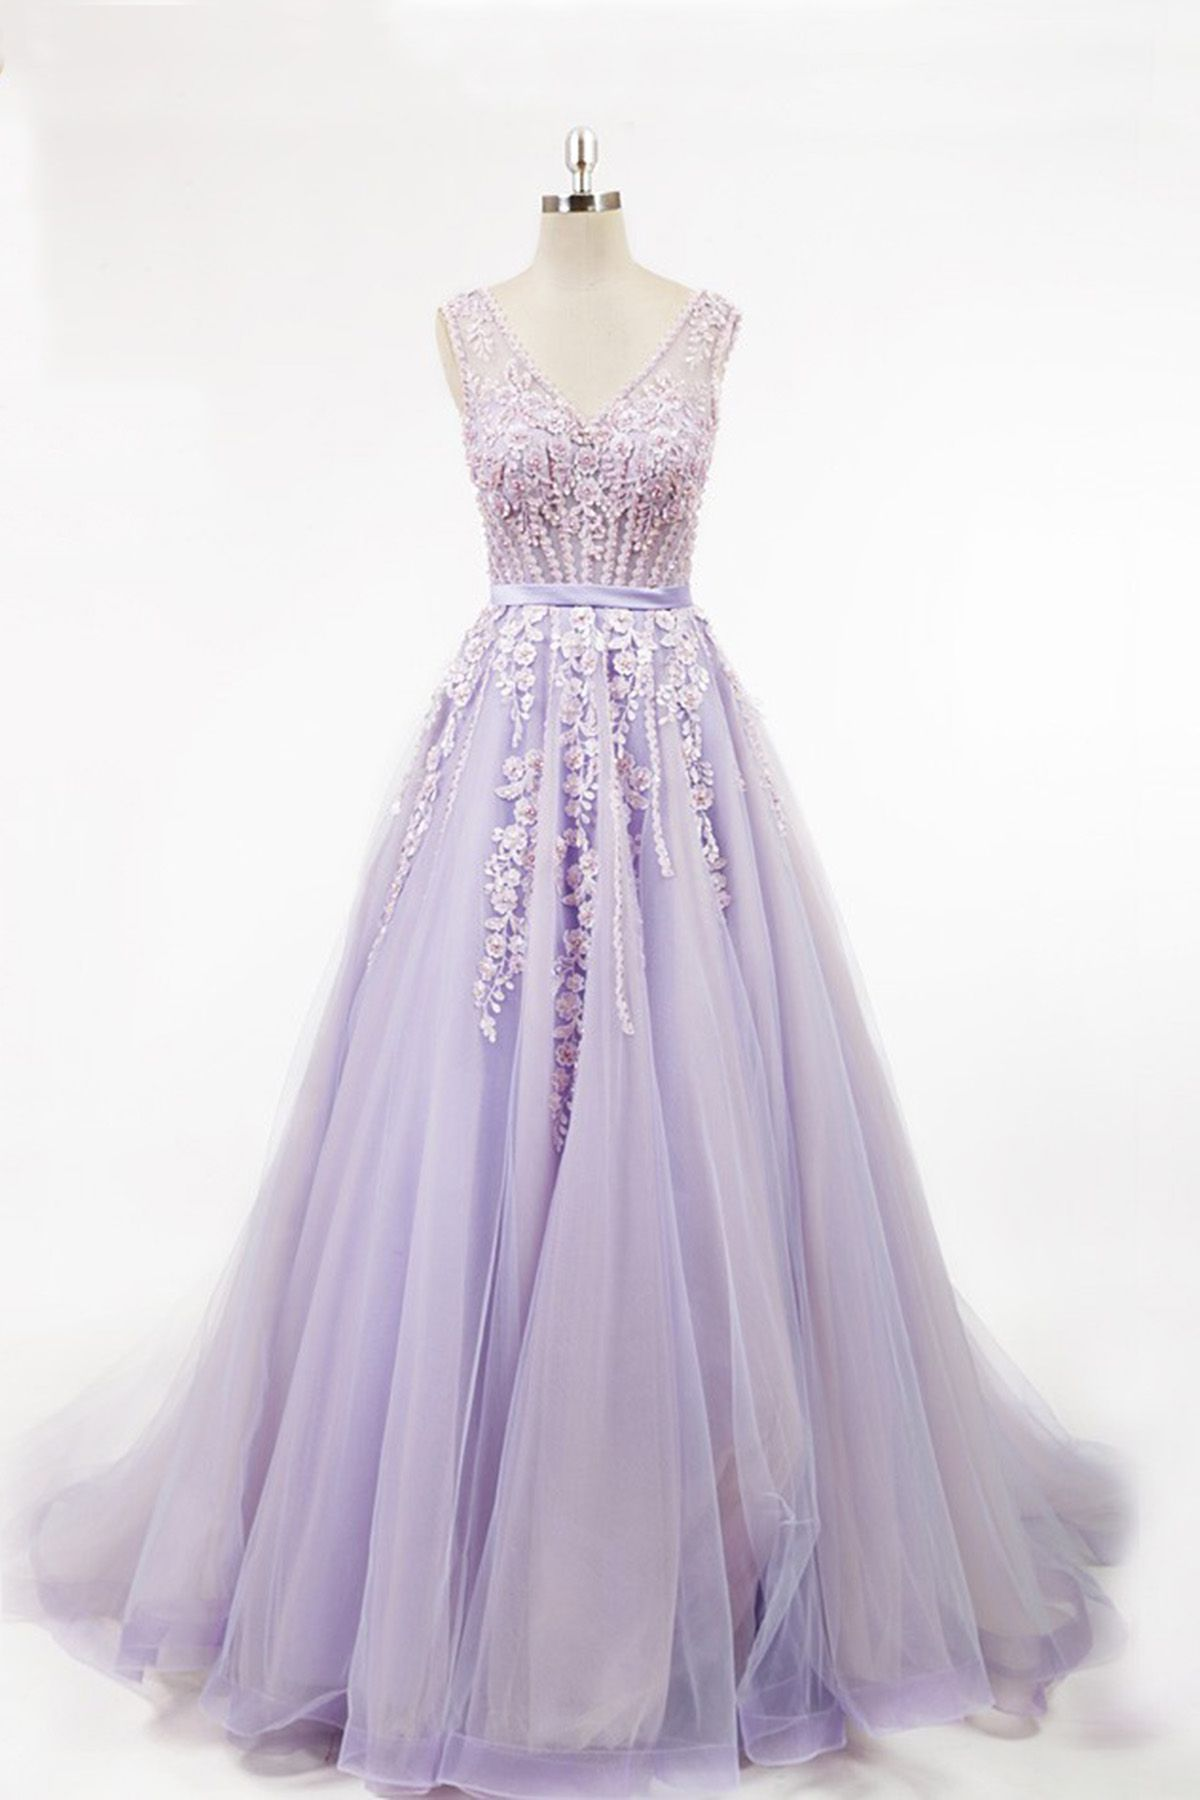 761226a9c Beautiful lavender tulle prom dress with 3D flowers, modest prom dress,  senior prom dresses